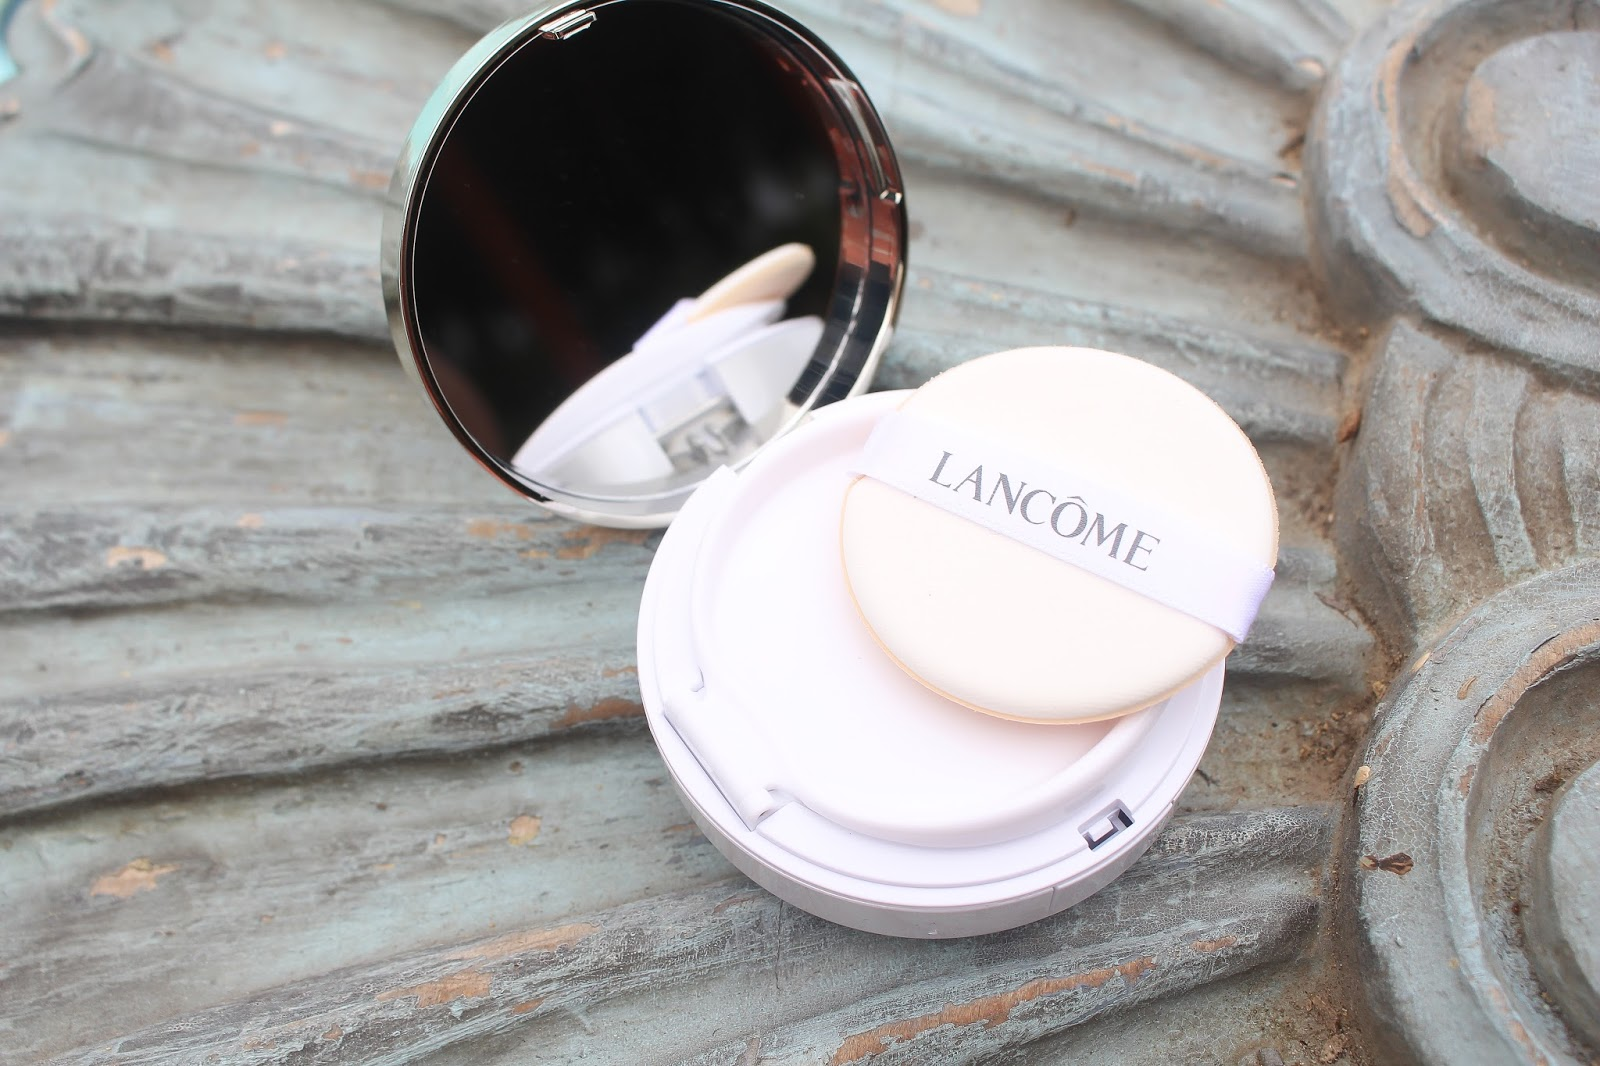 Lancôme Miracle Cushion Foundation Packaging